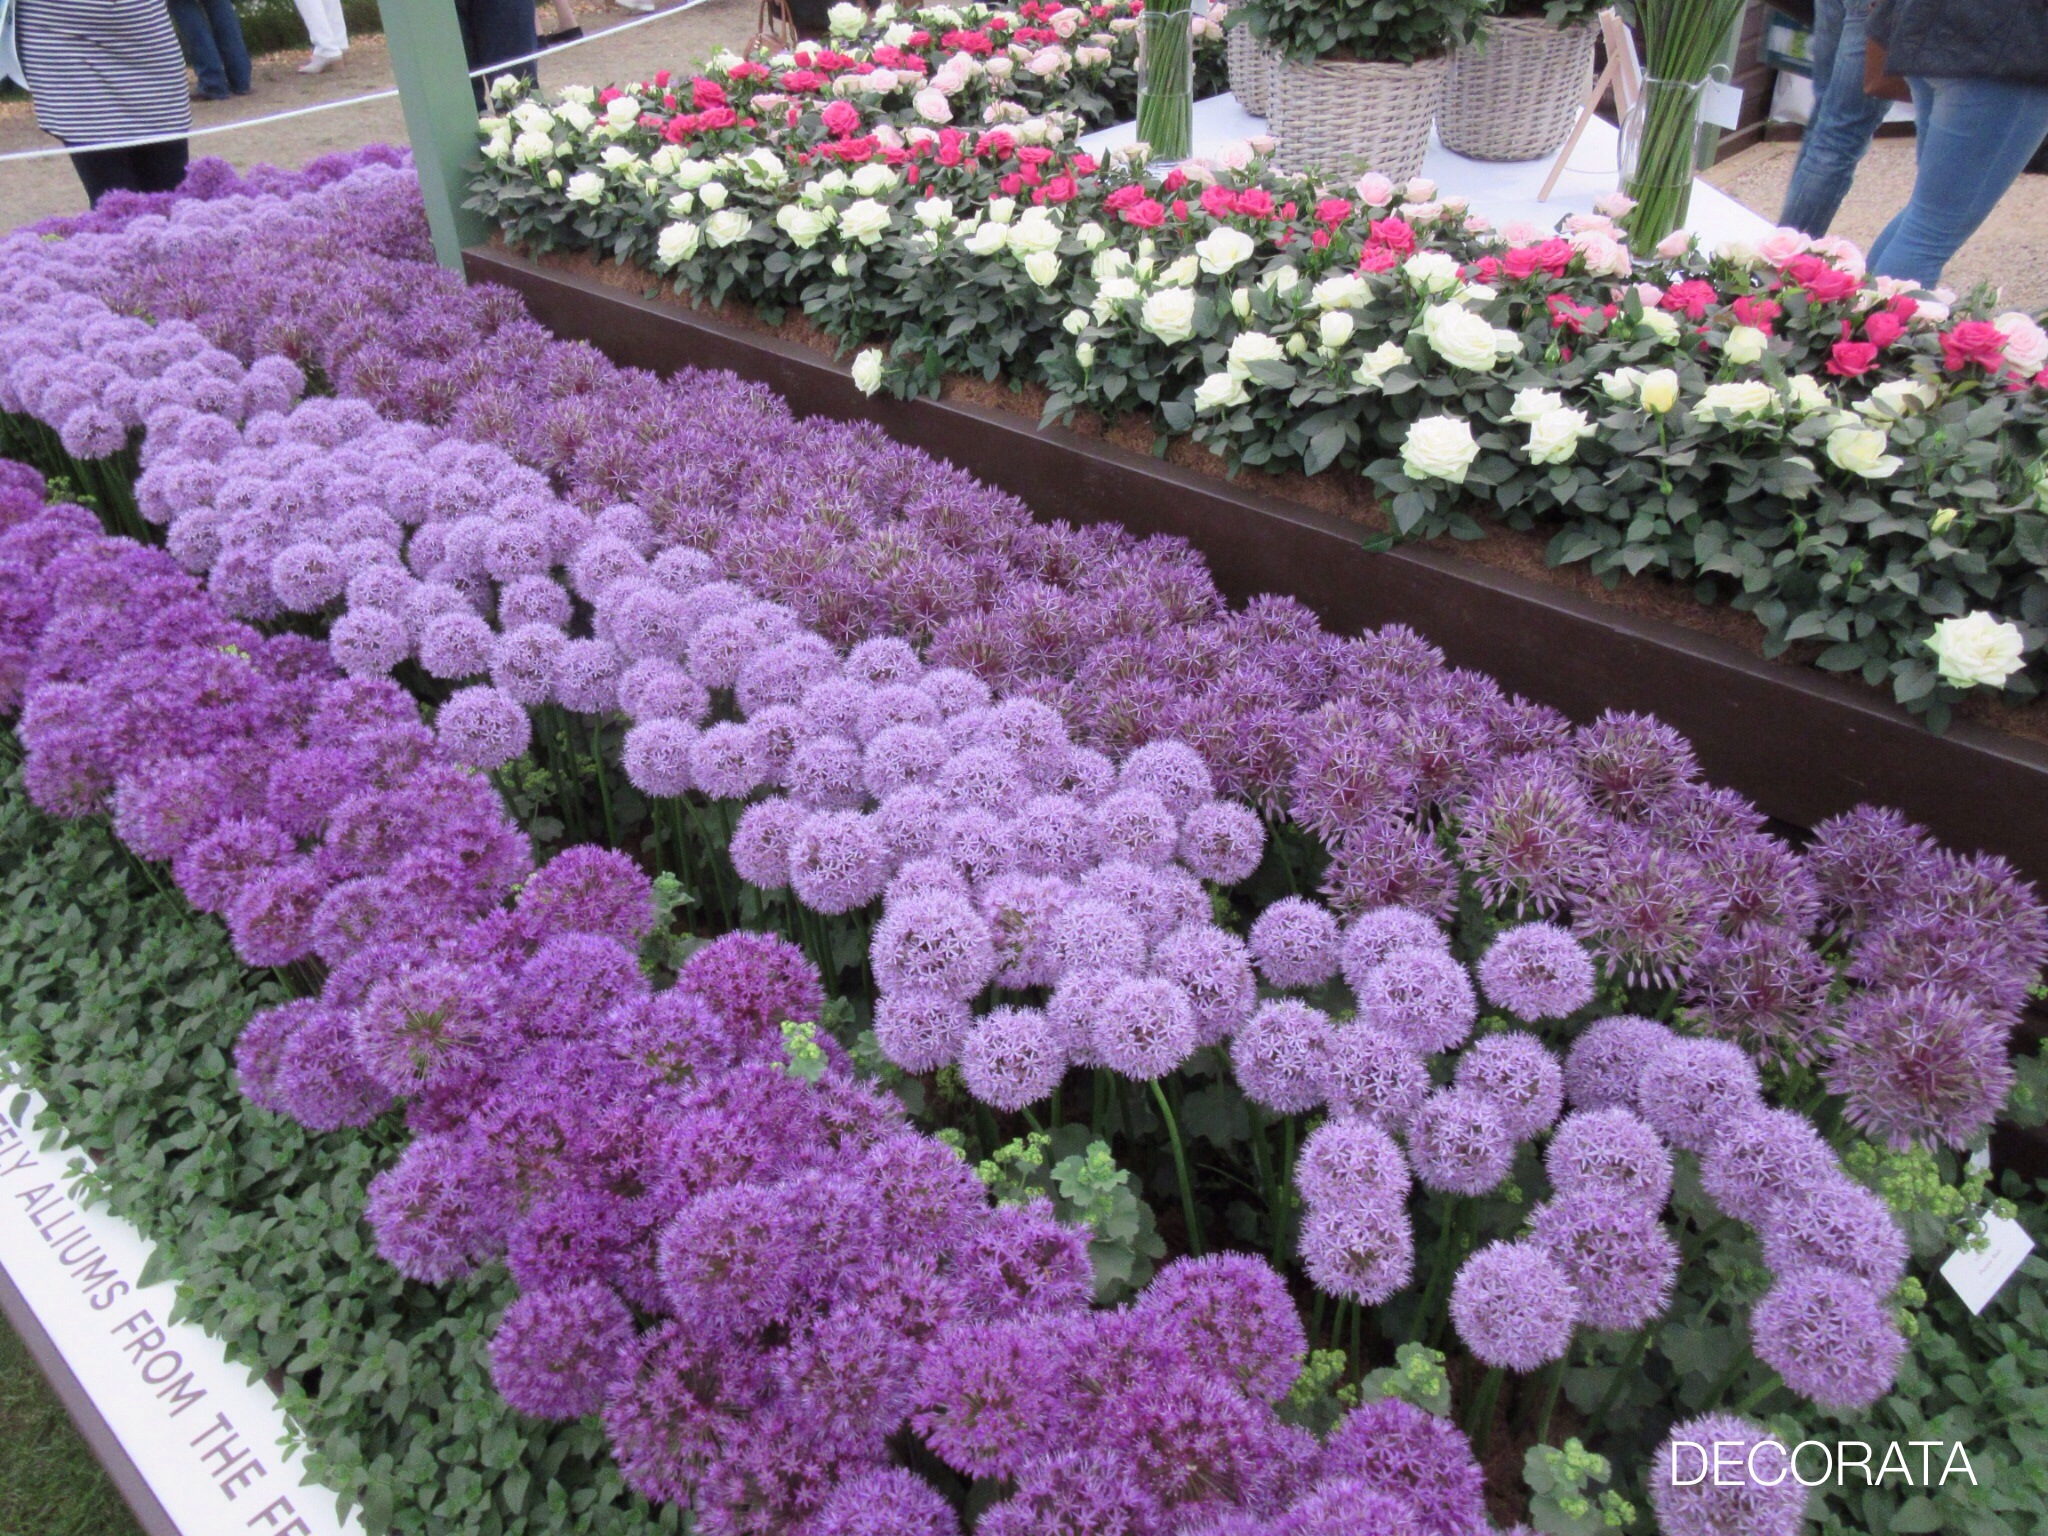 RHS Chelsea Flower Show, Allium, Decorata Design, sue womersley